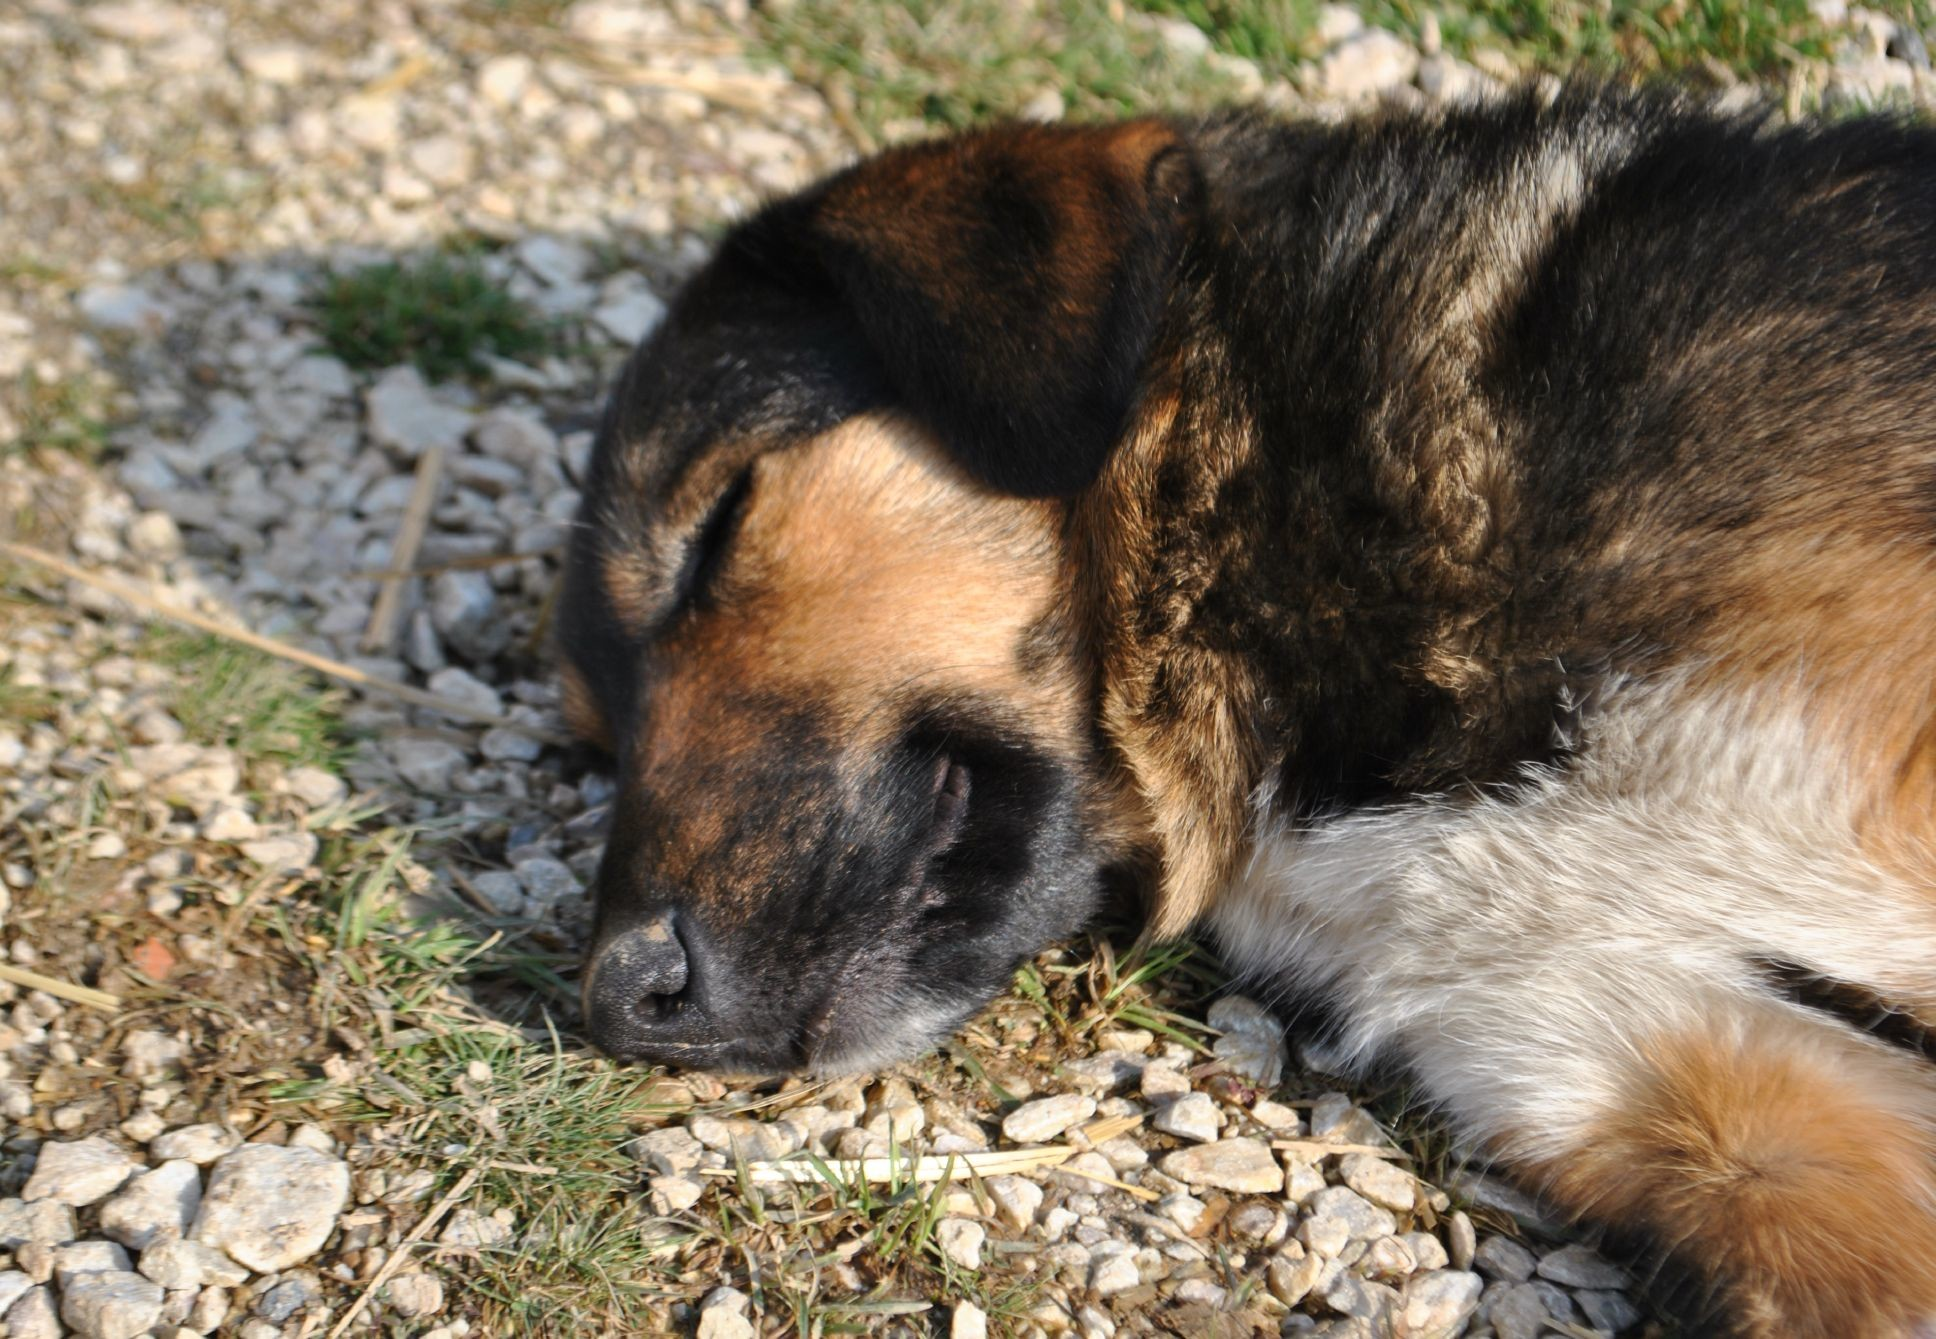 Travel-related illnesses in dogs